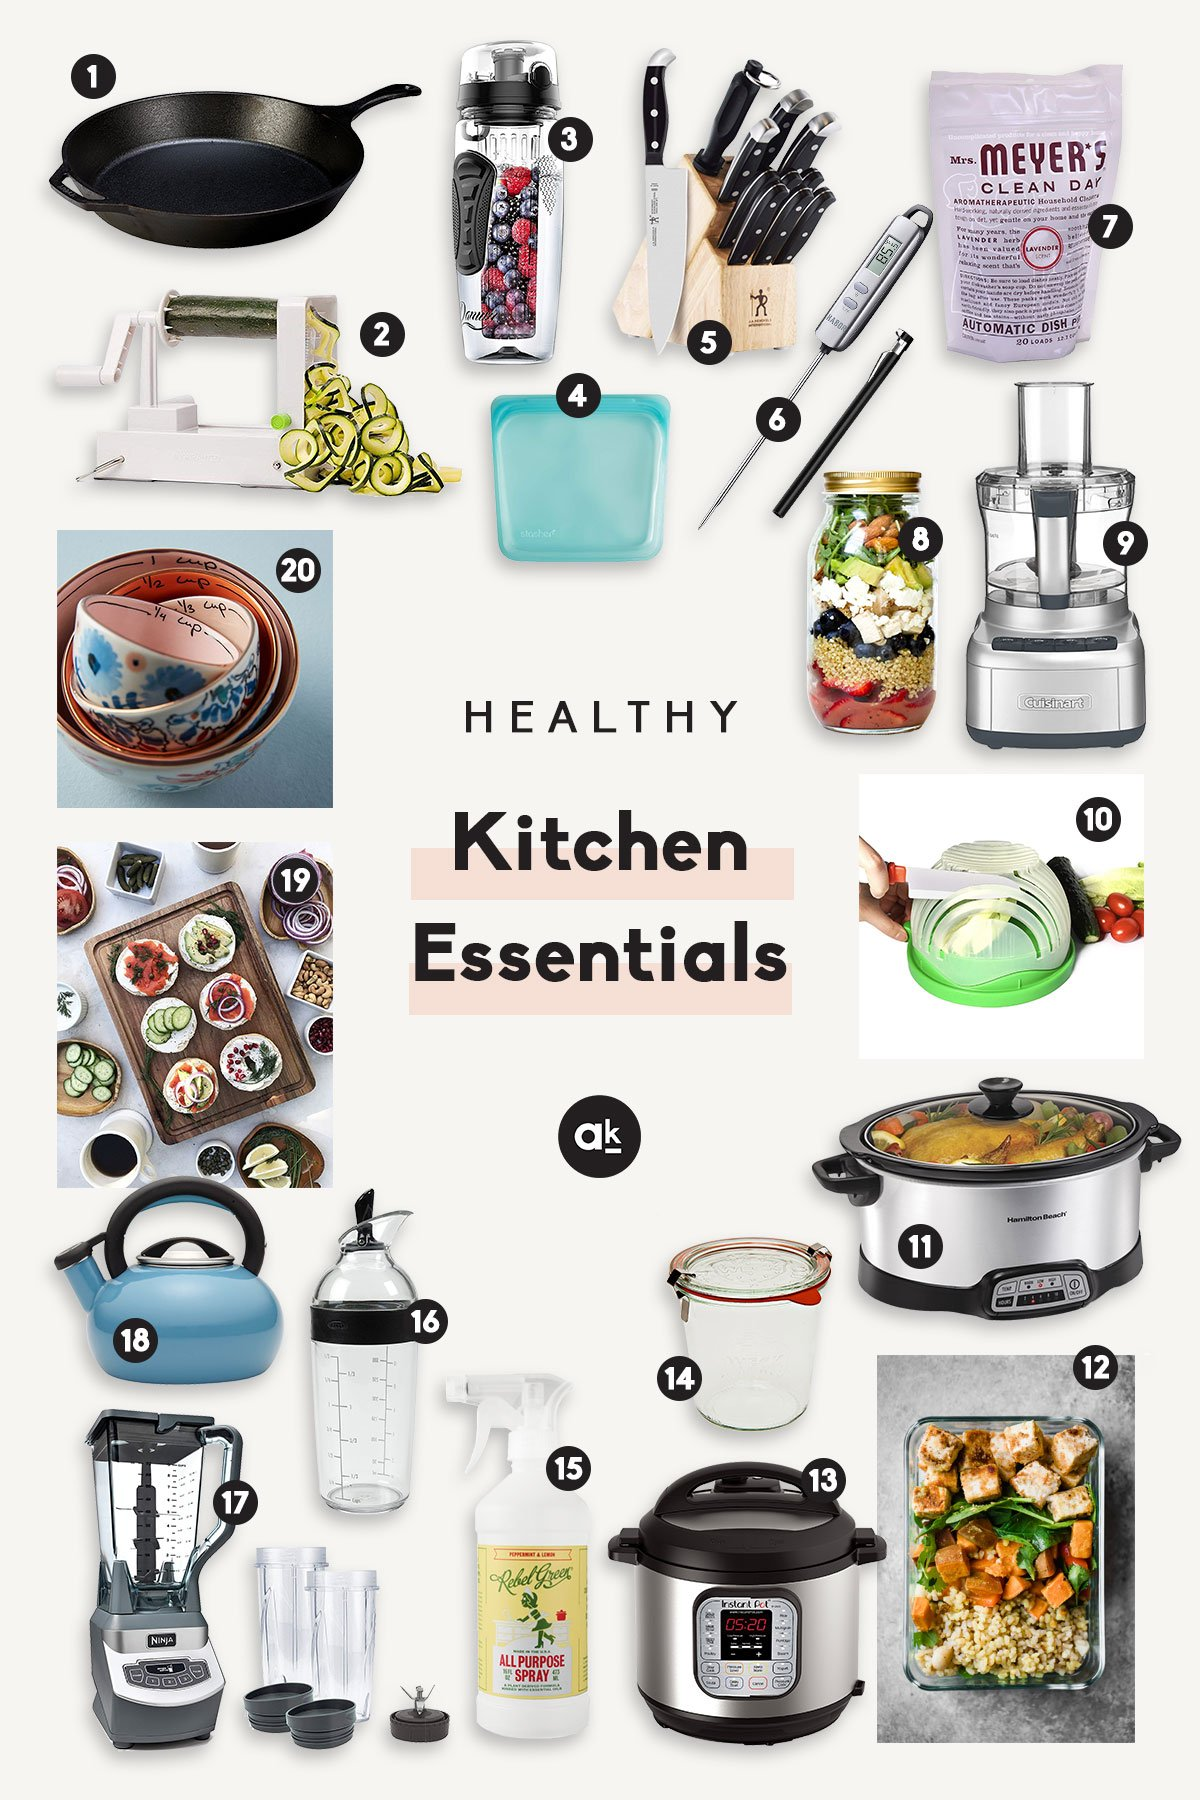 A Well Stocked Kitchen Is Key For Creating Sustainable Healthy Habits These 20